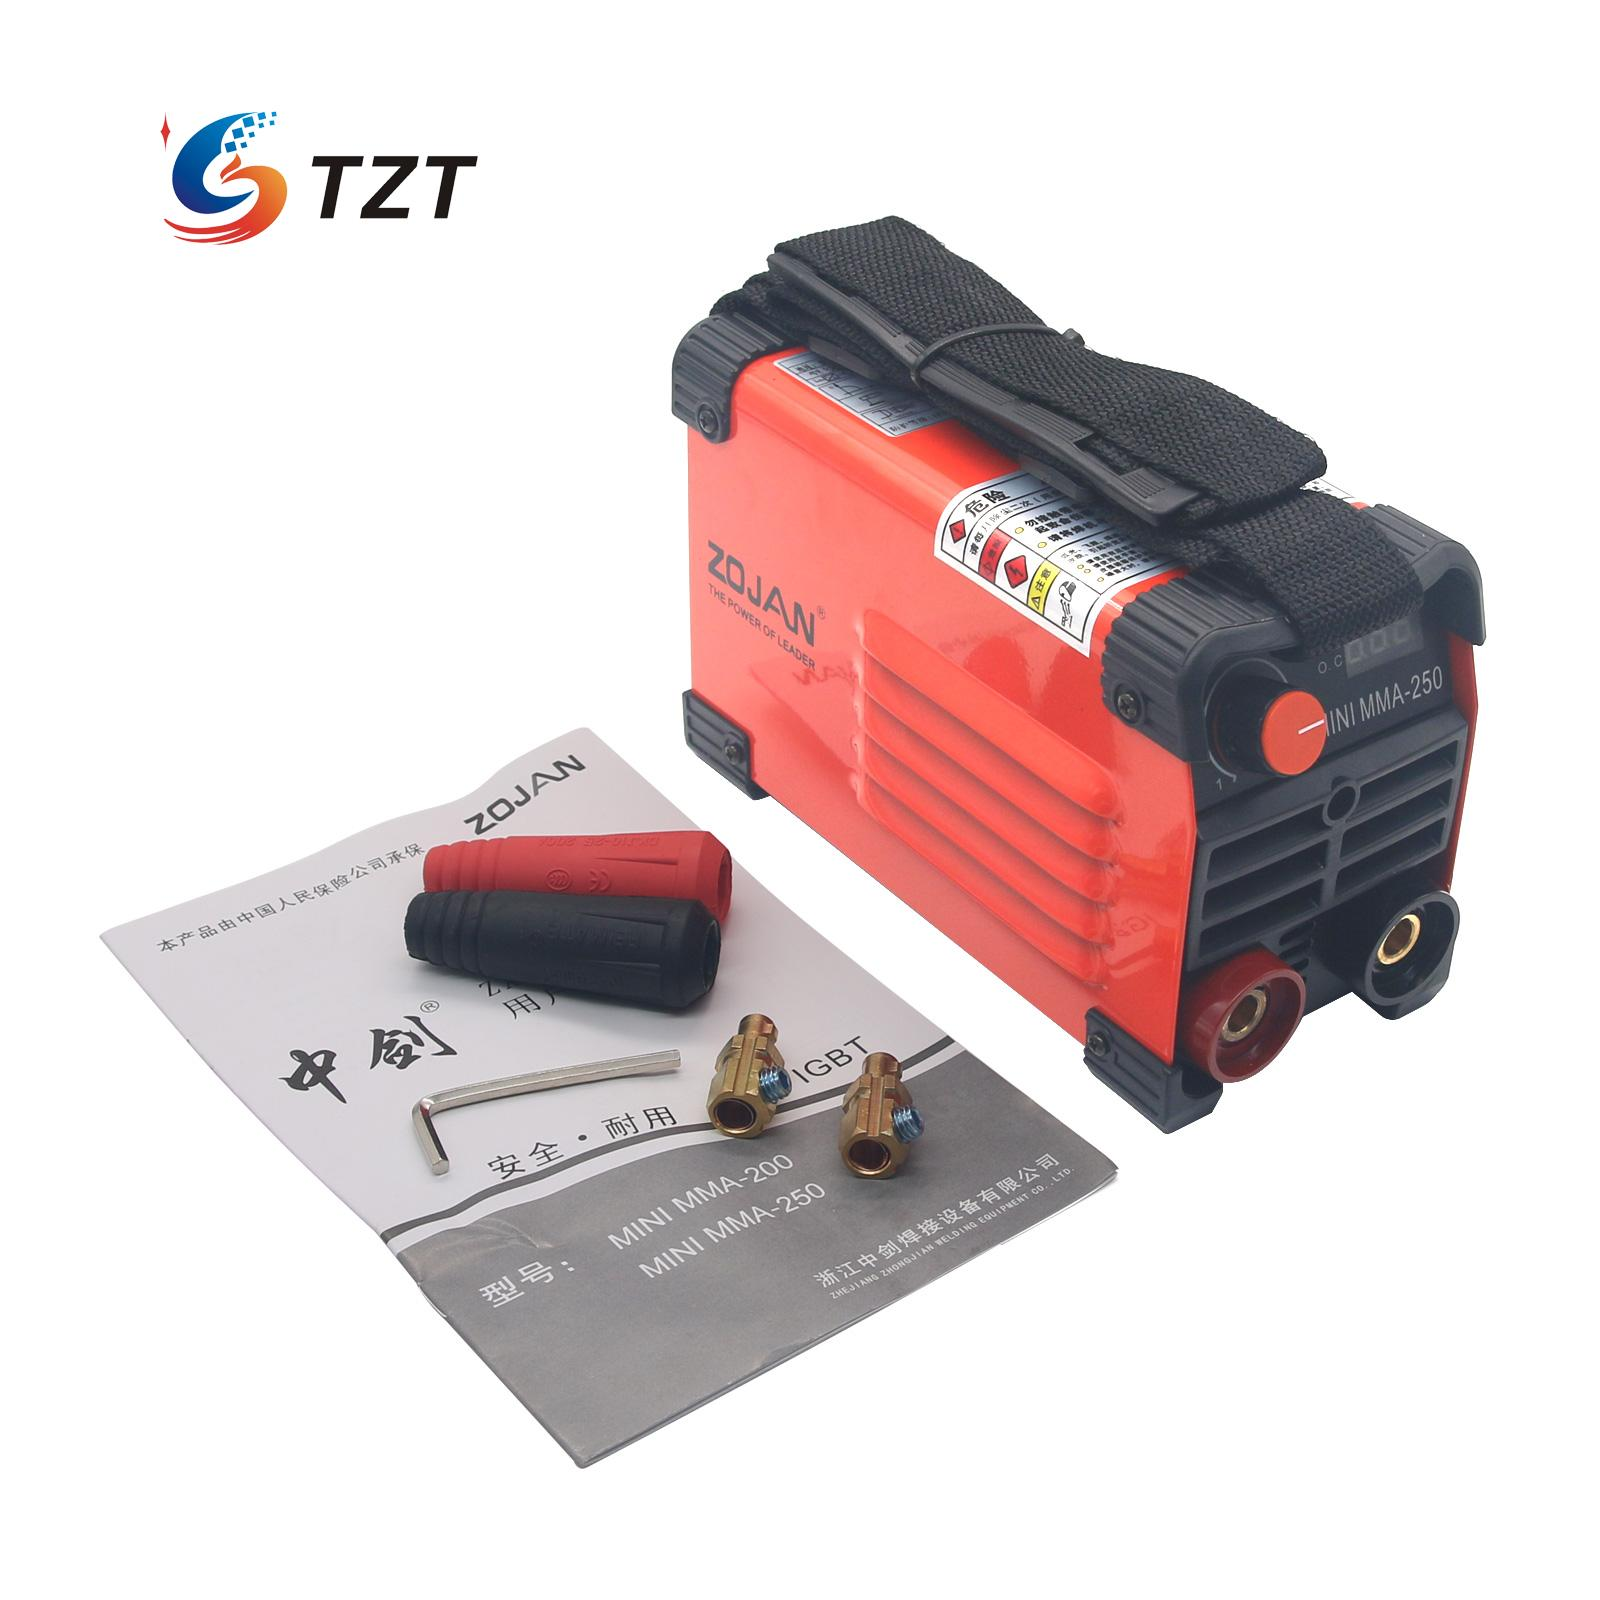 Handheld Mini MMA Electric Welder 220V 20-250A Inverter ARC Welding Machine Tool mma 300 5 20